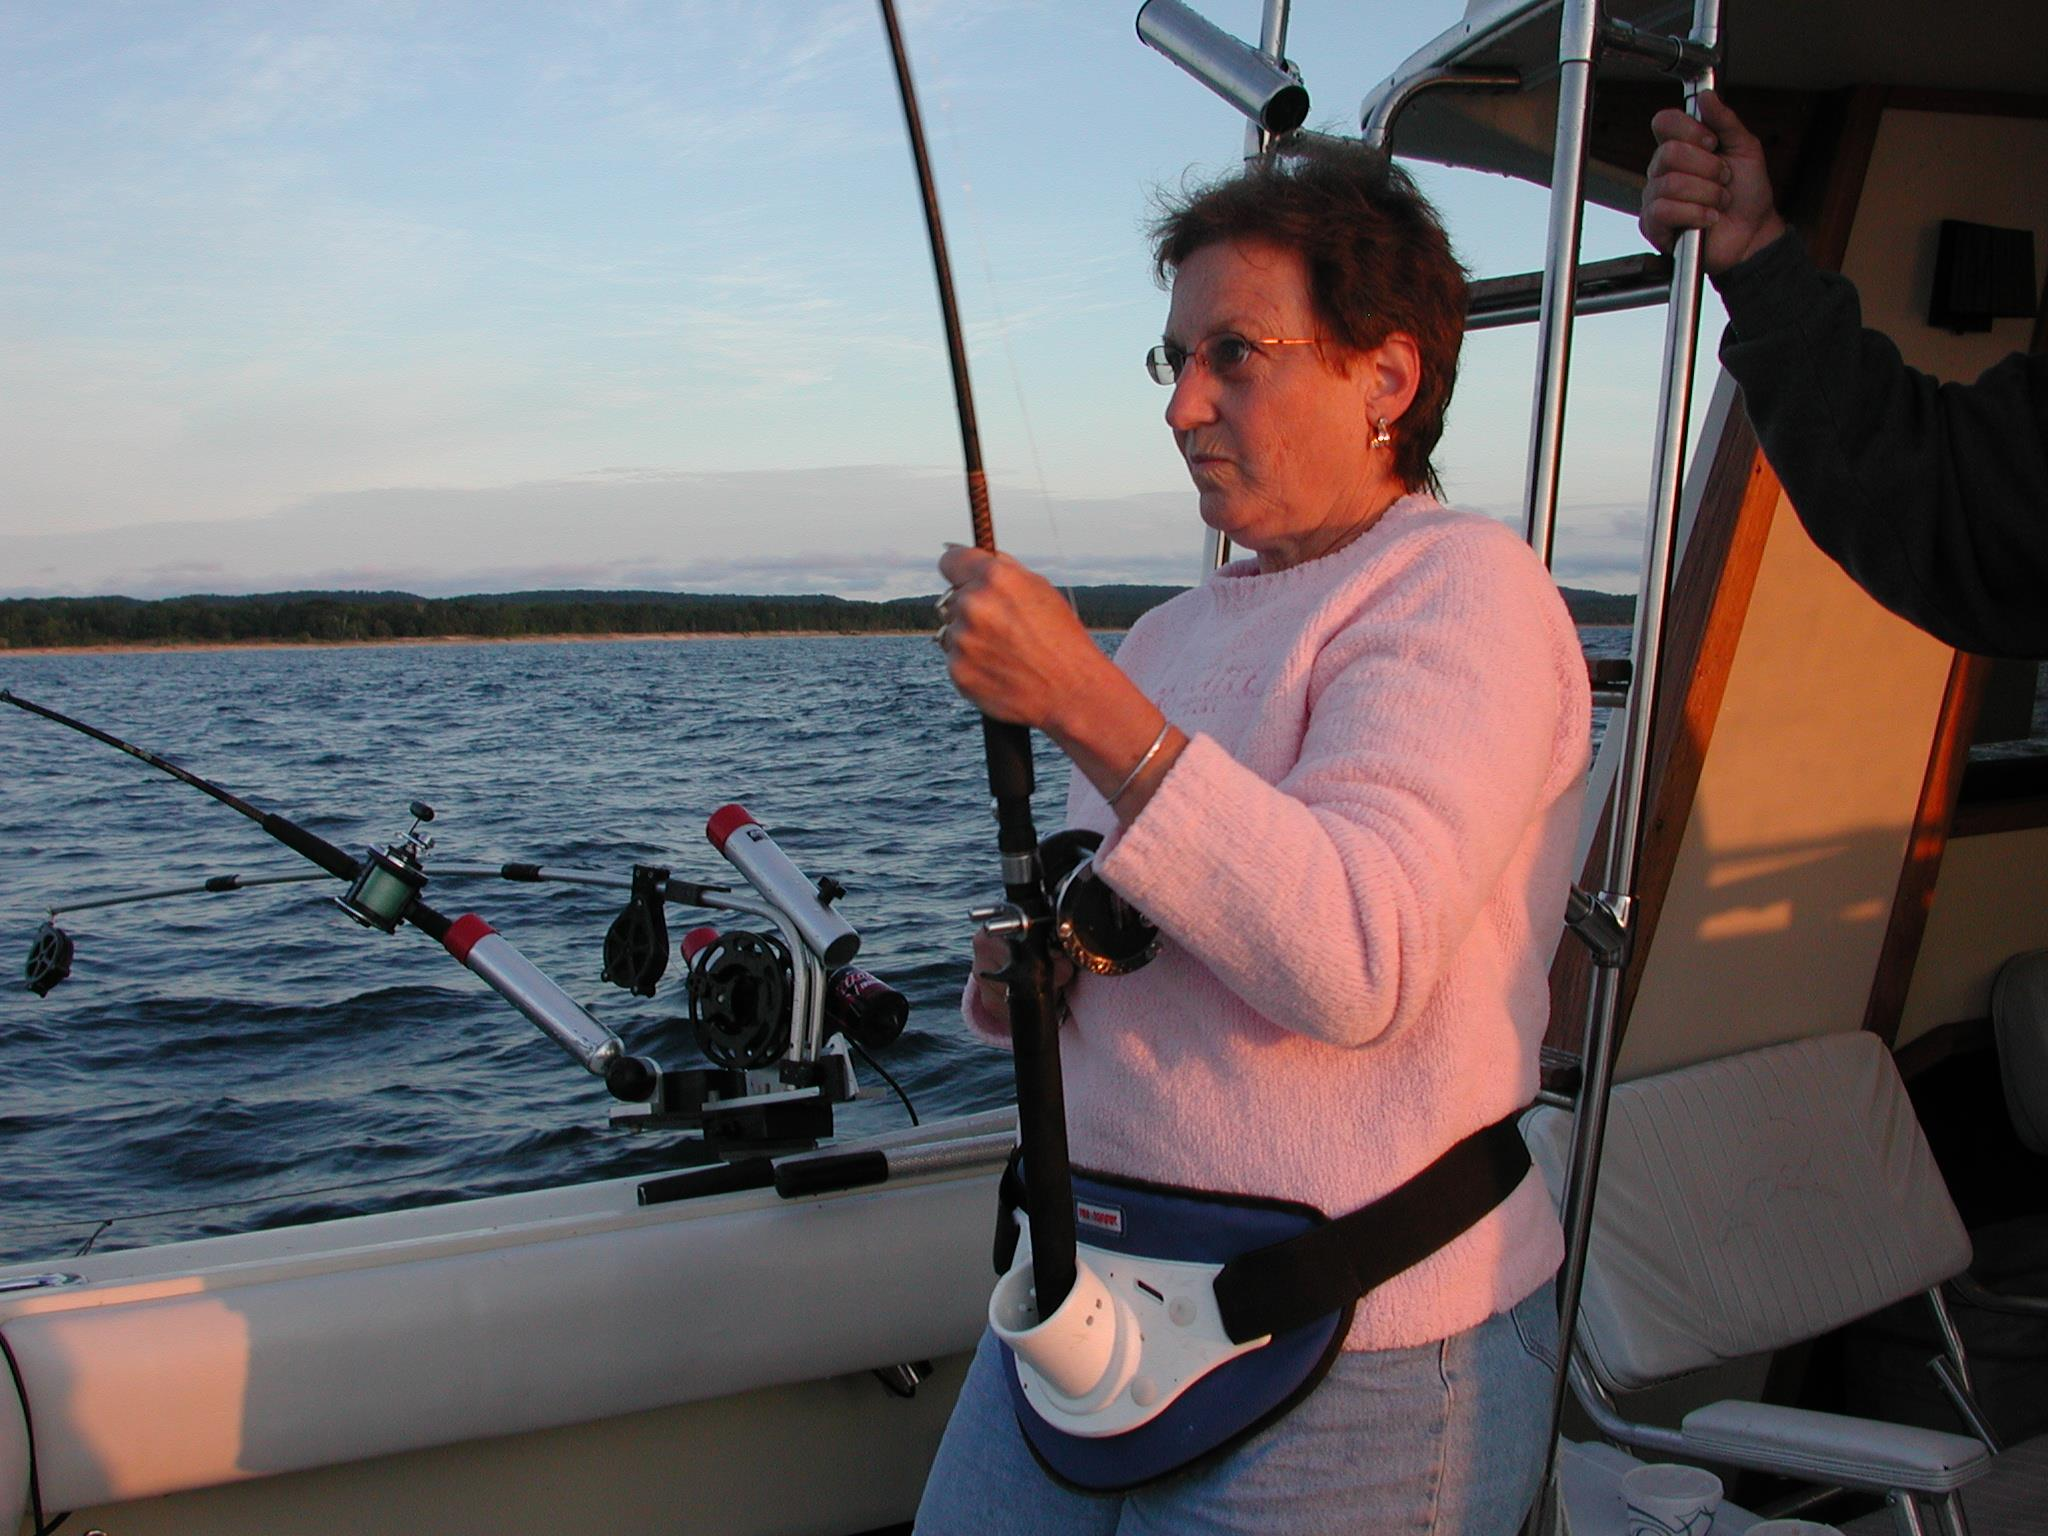 Mary DeWitt Broker / Real Estate Agent Fishing near Leland